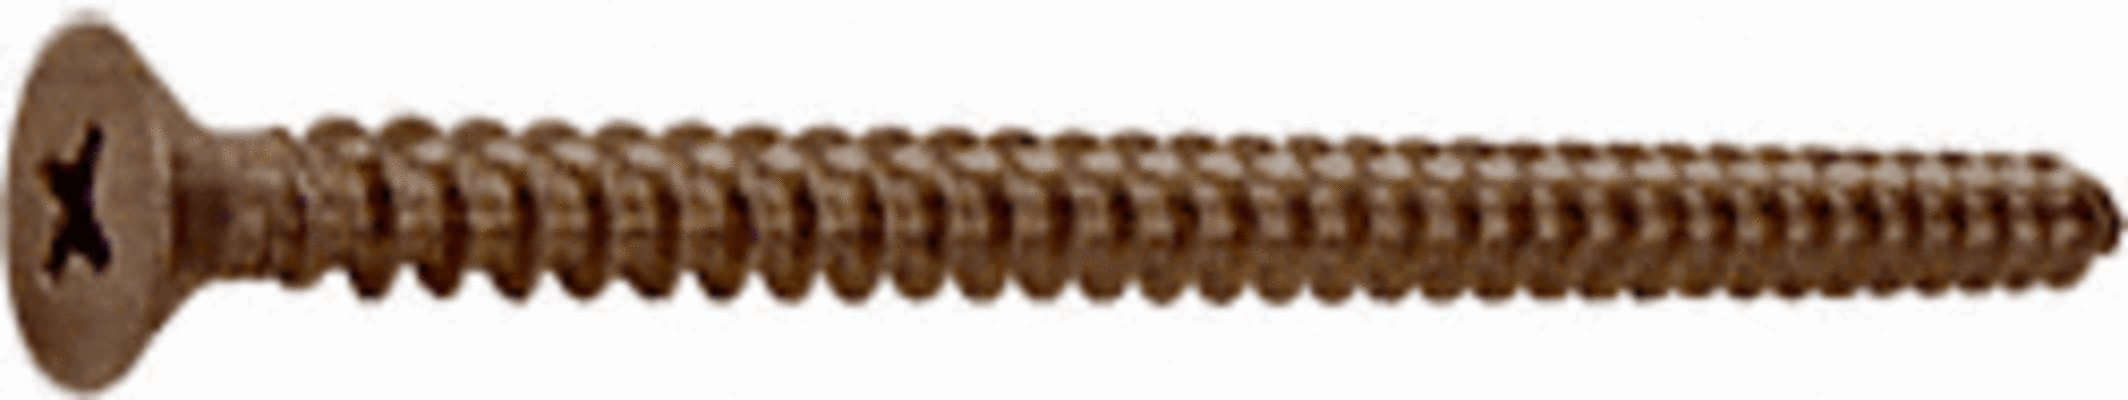 CRL Brushed Bronze #10 x 3'' Wall Mounting Flat Head Phillips Sheet Metal Screw - Package